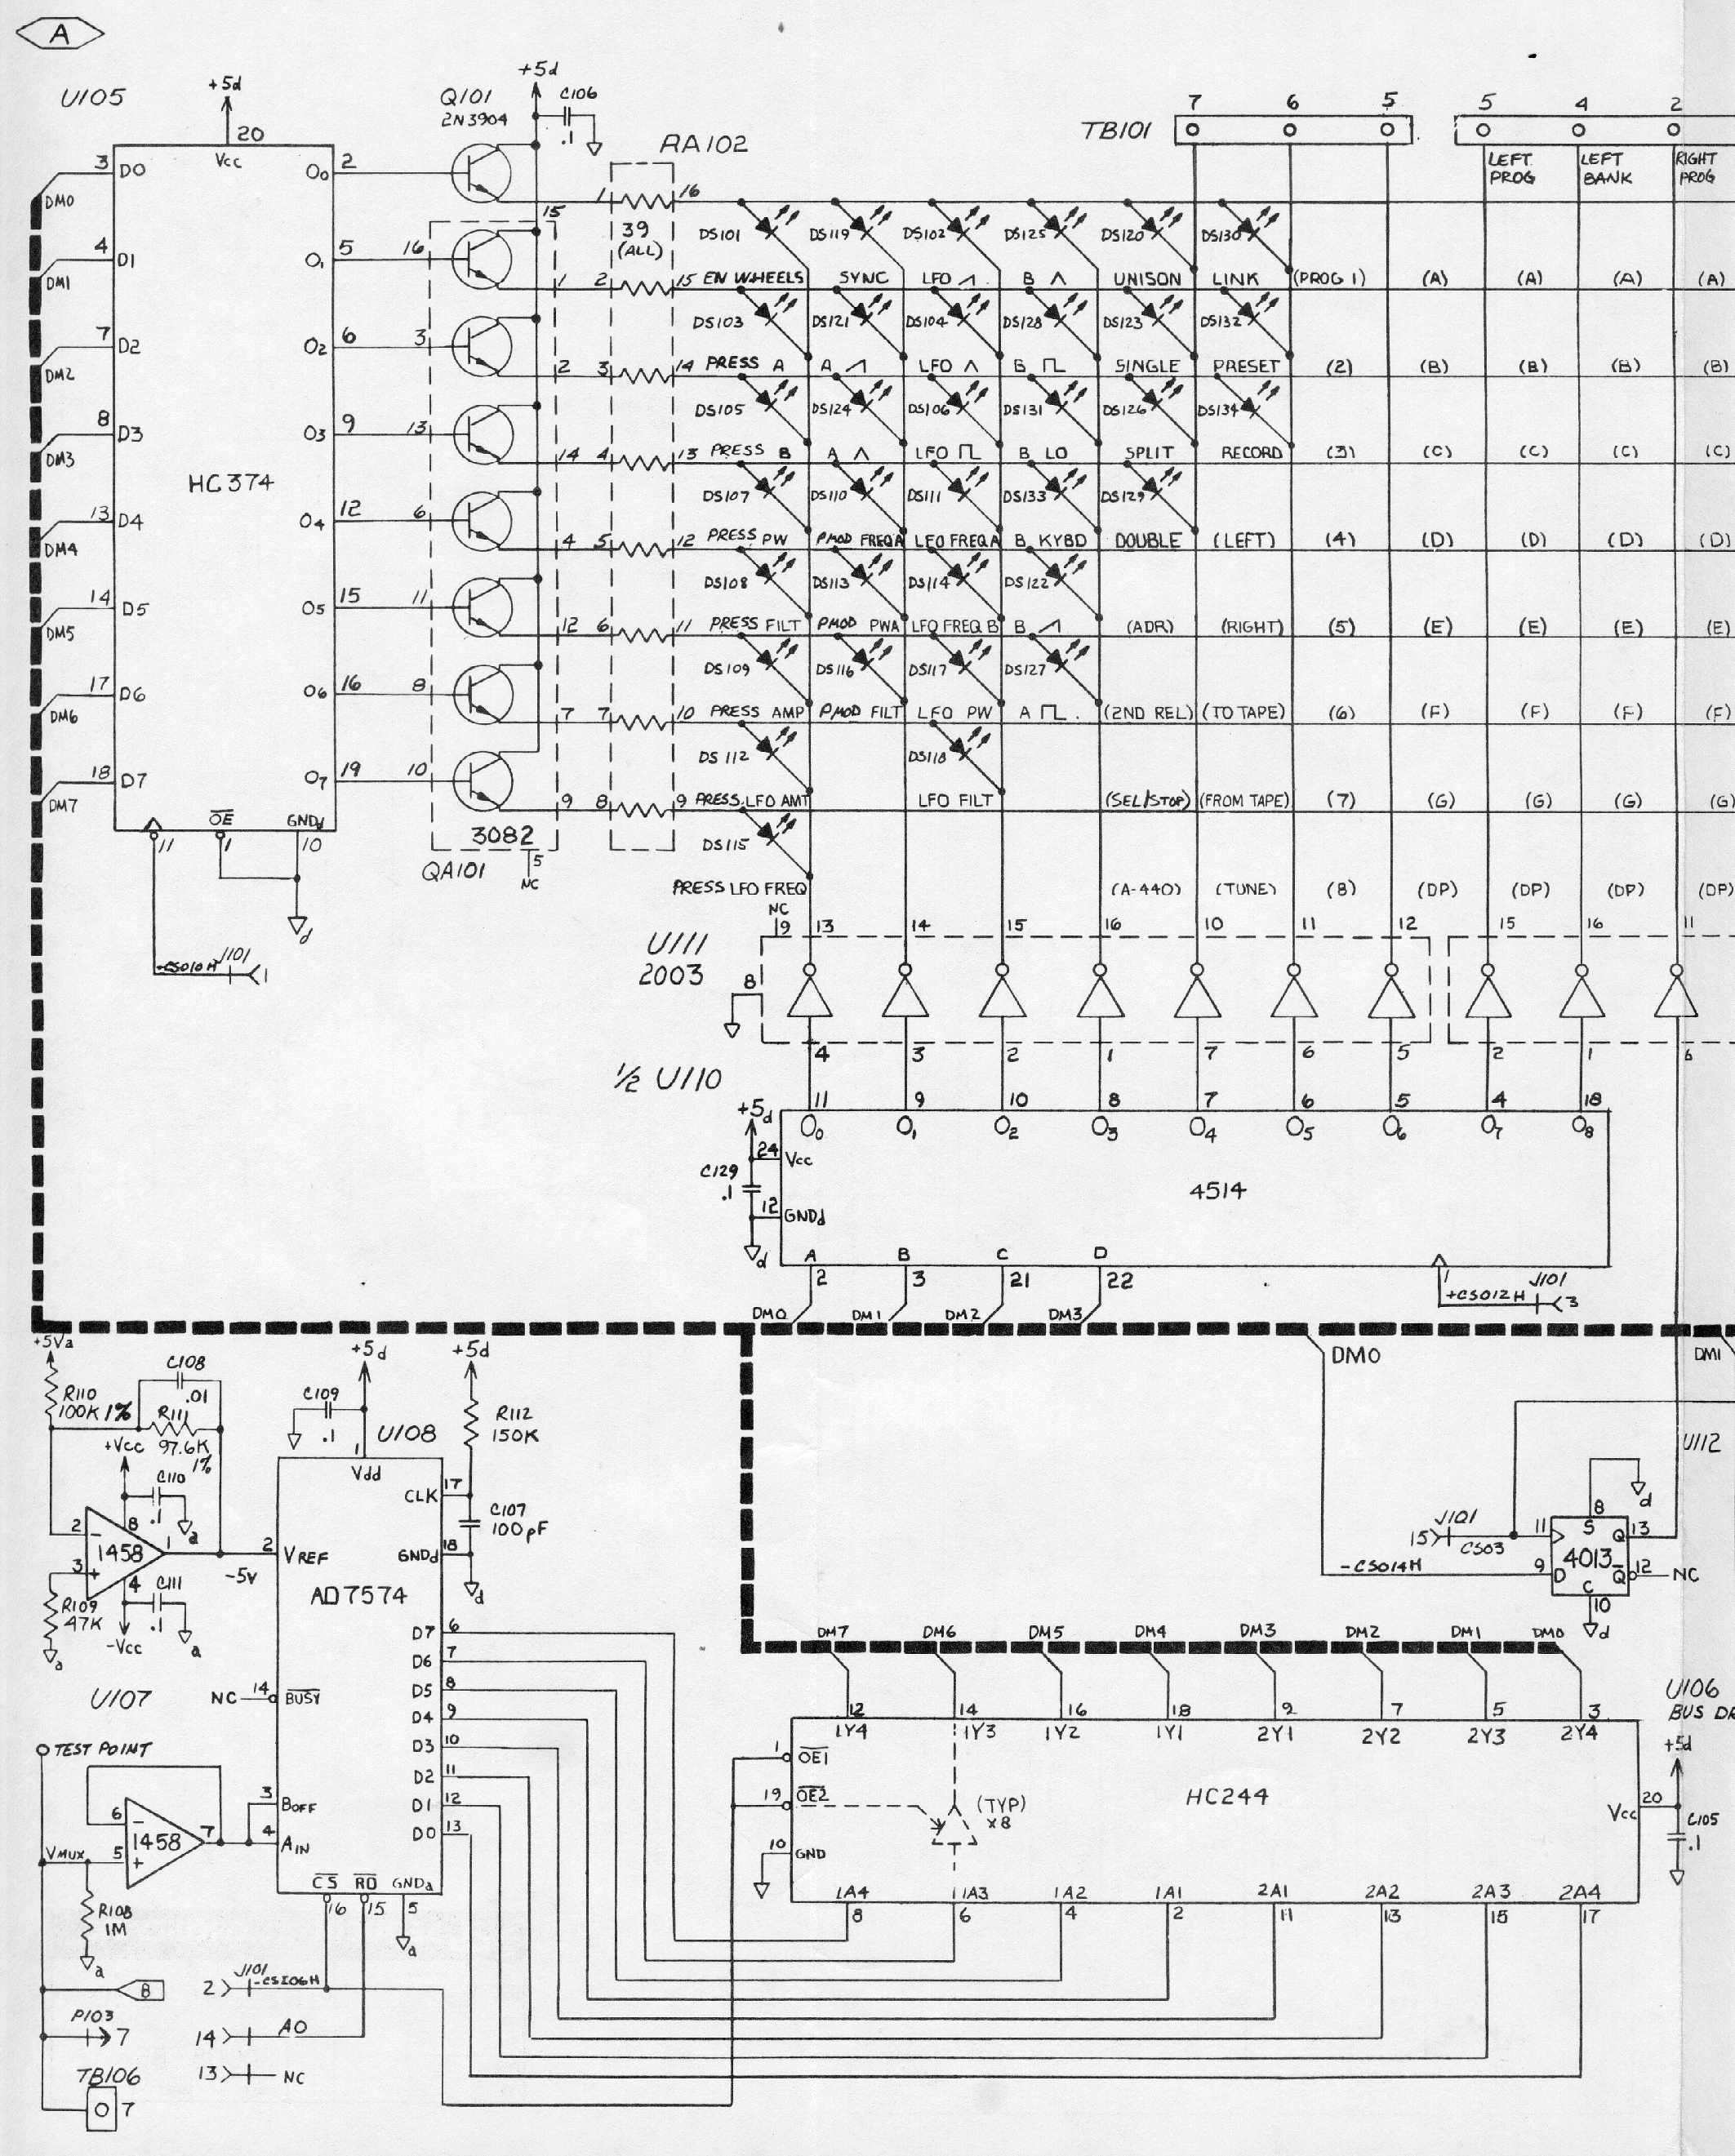 Sequential Tail Light Wiring Diagram. Diagrams. Wiring